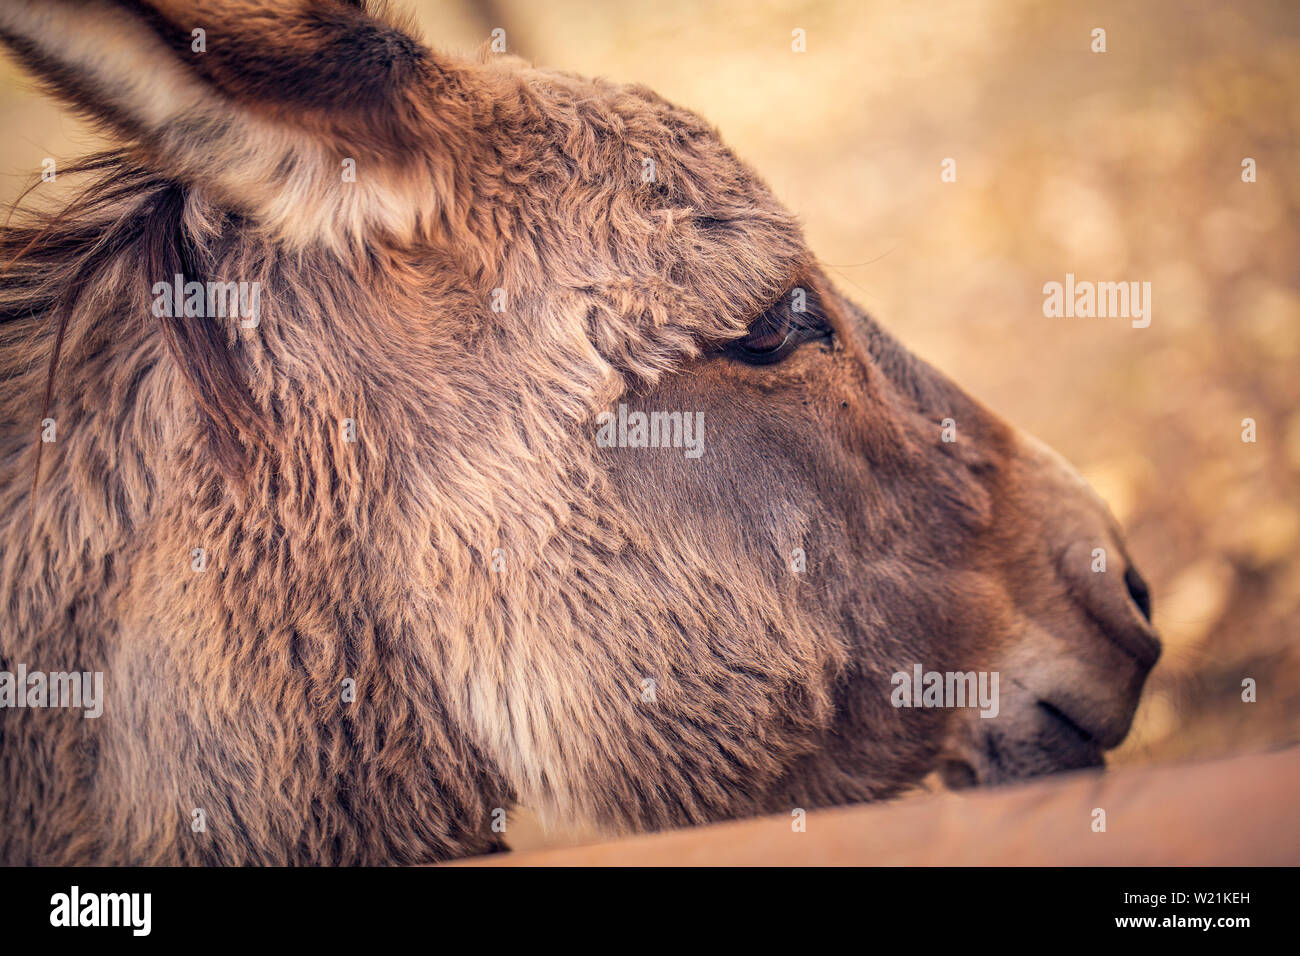 beautiful brown donkey domesticated member of the horse family Stock Photo